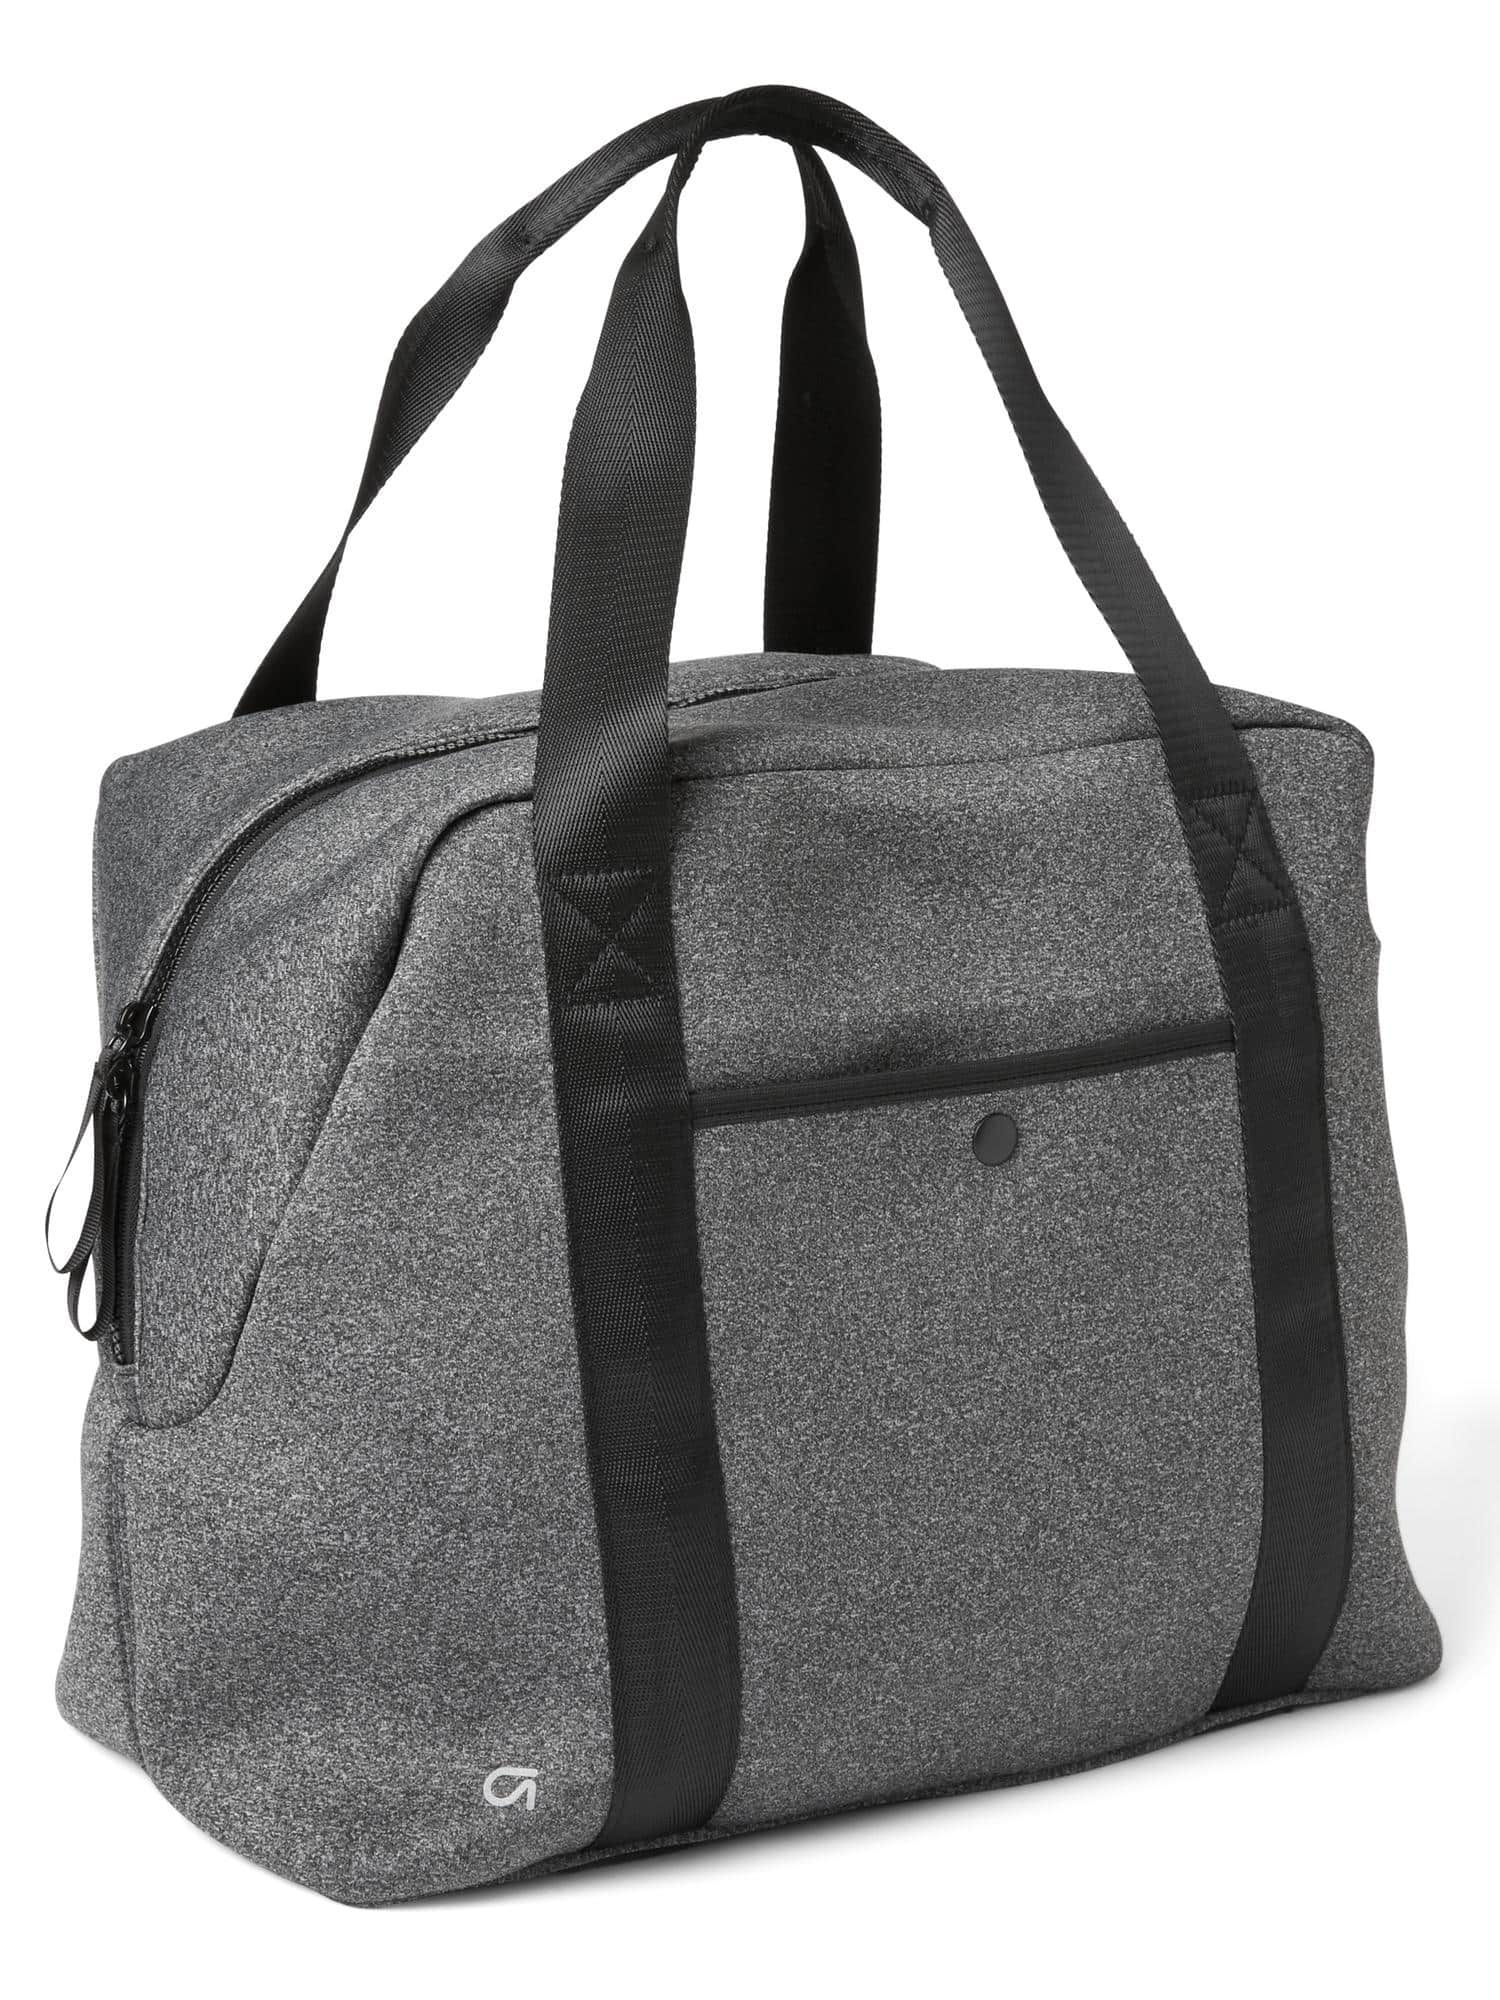 f36ba1951 Gym Duffle Bag Athleta | The Shred Centre